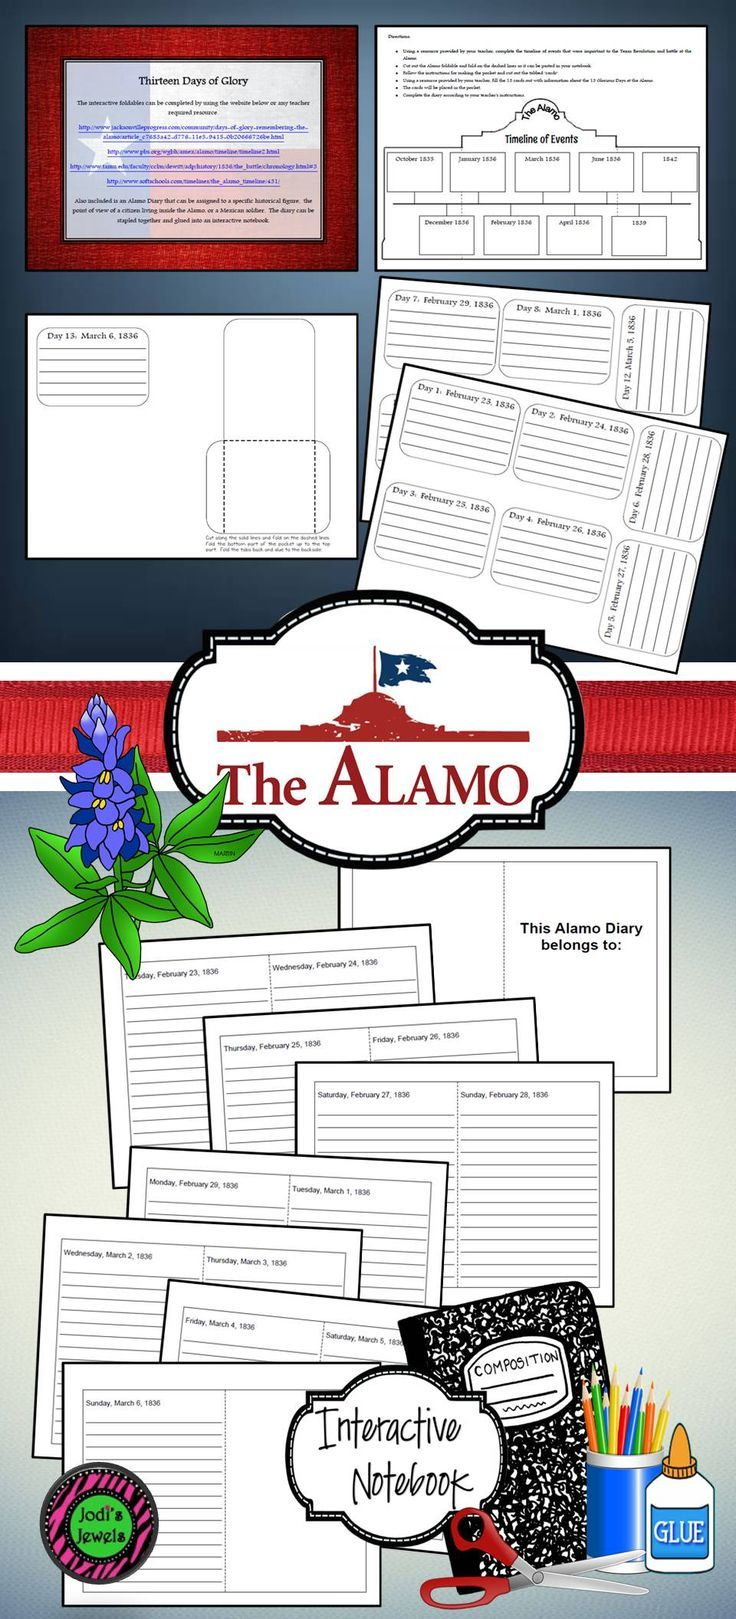 Students will create a timeline of events, an account of the 13 days for the battle and siege of the Alamo in this interactive notebook activity. Students will also create a diary as if they were there on the days that the siege took place.